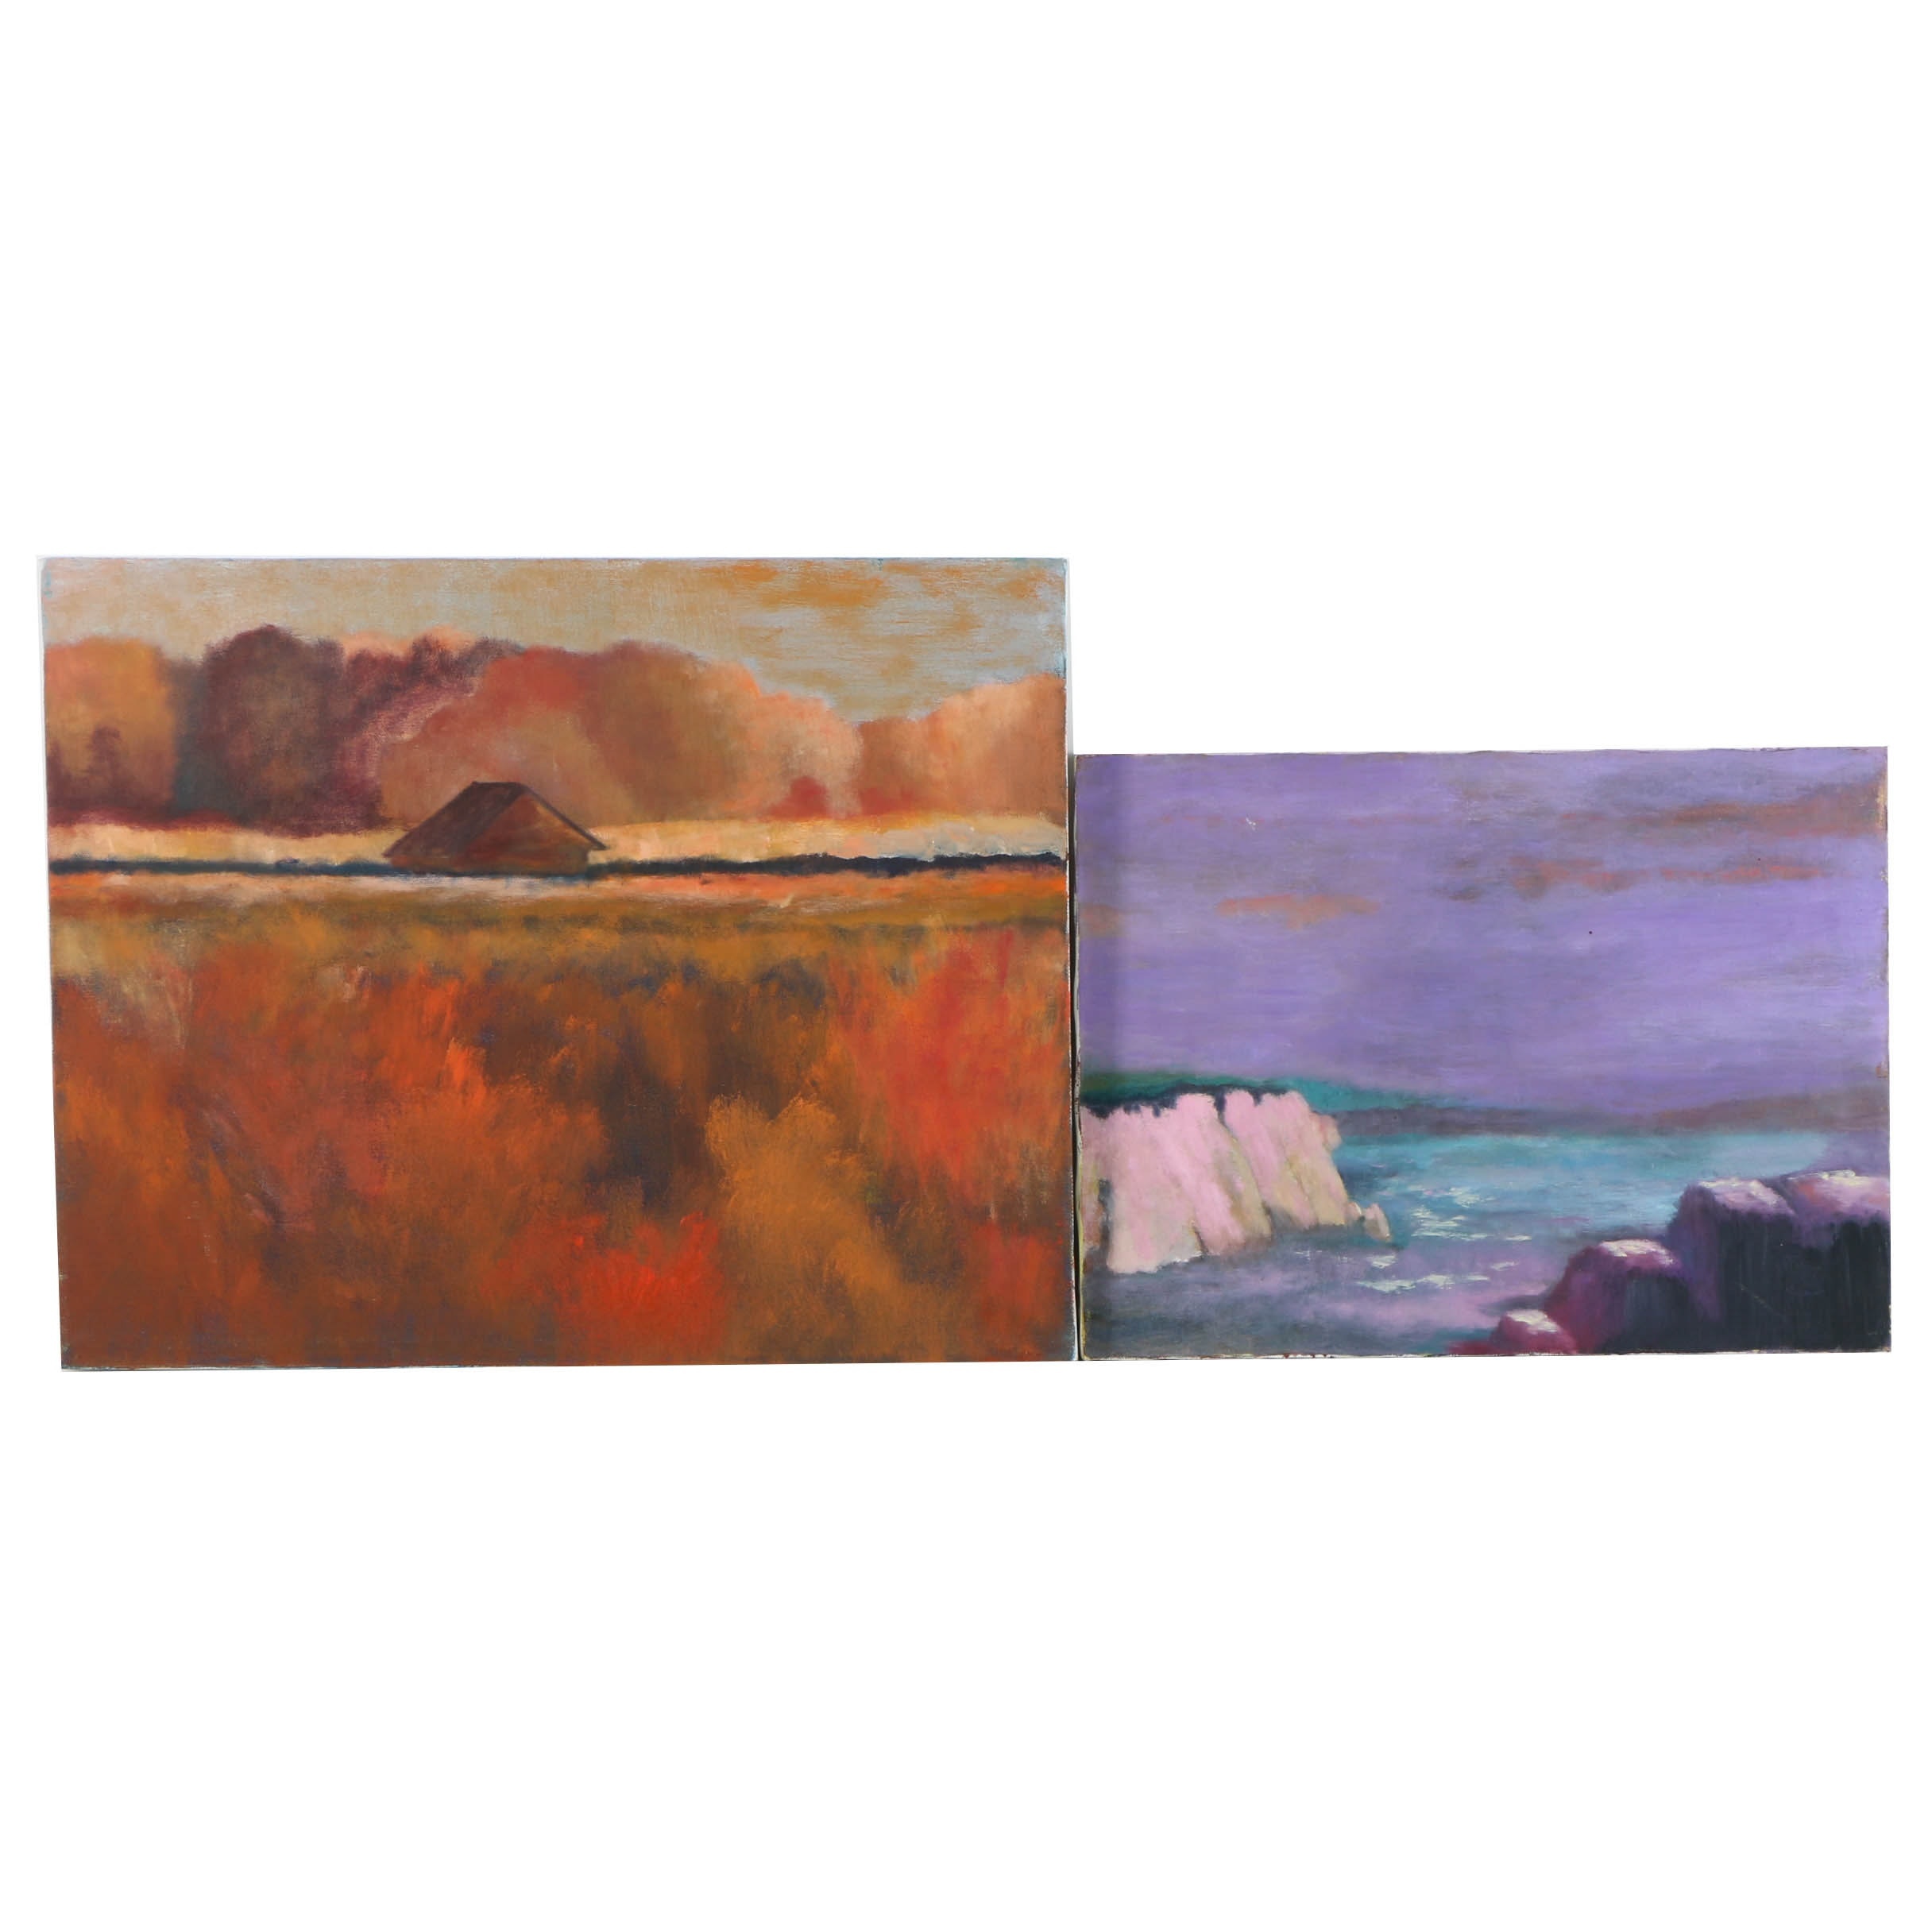 Pair of Oil Paintings on Canvas of Abstract Landscapes